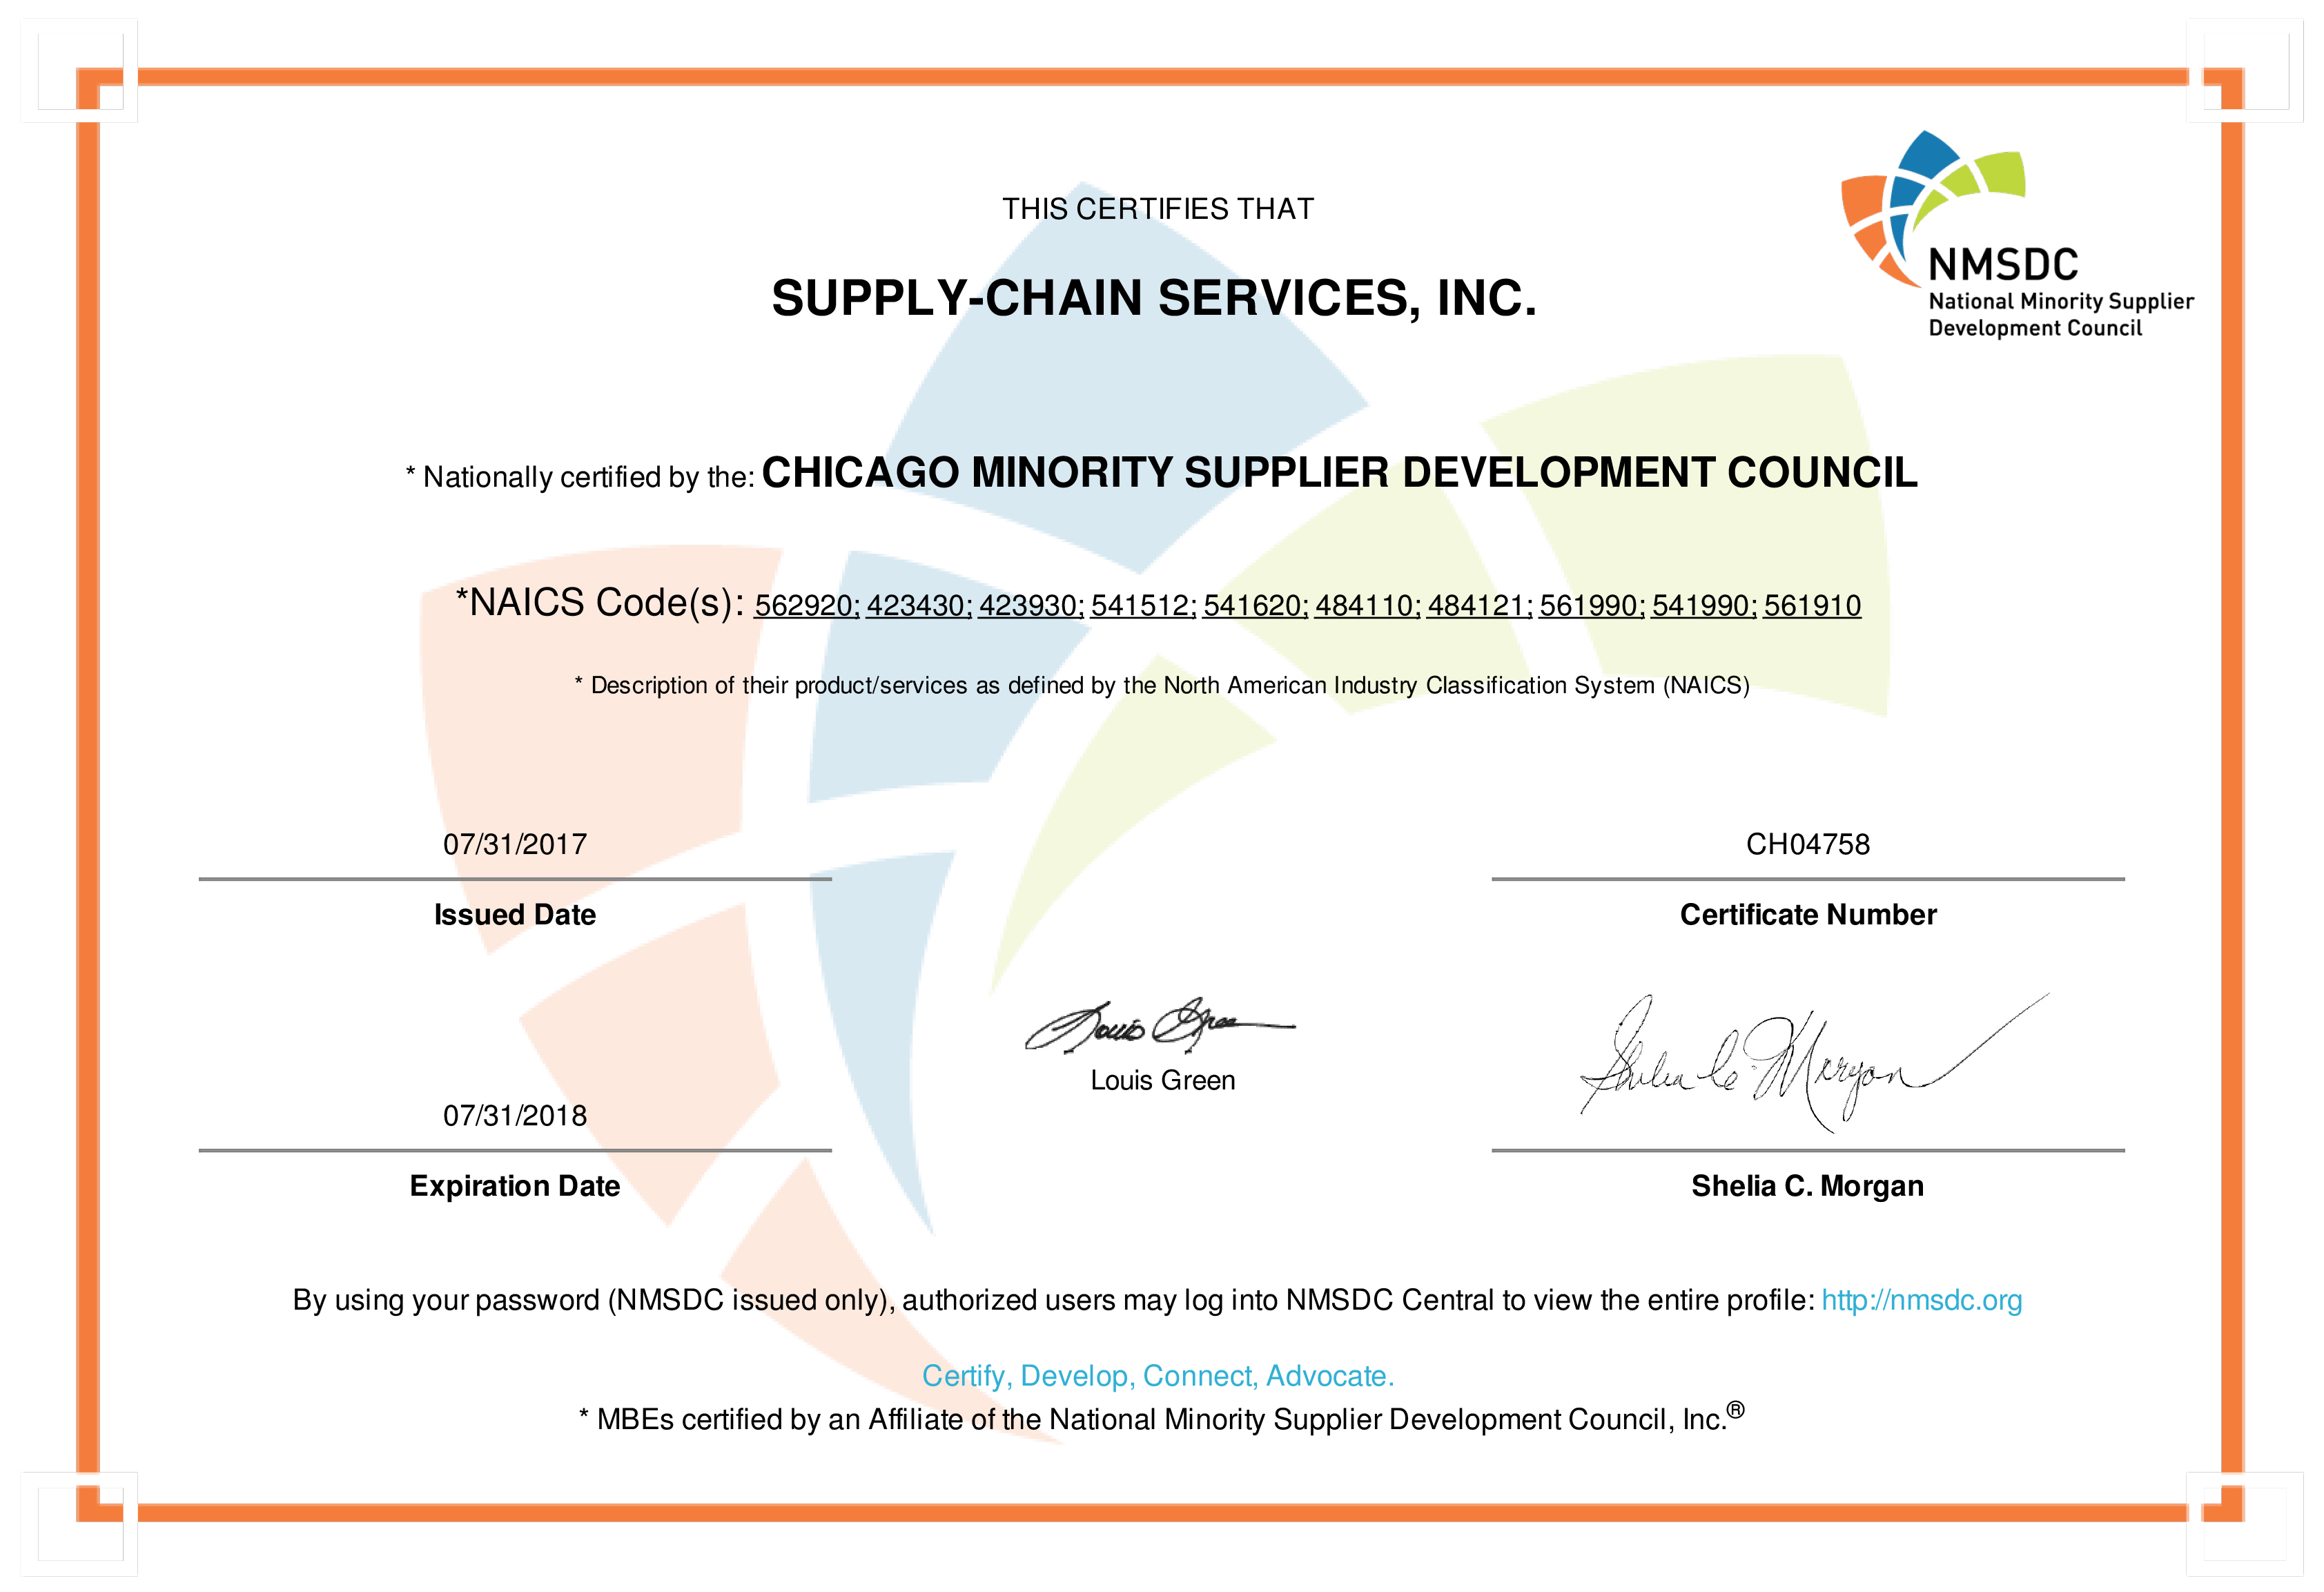 Nmsdc Certified Minority Business Enterprise Supply Chain Services